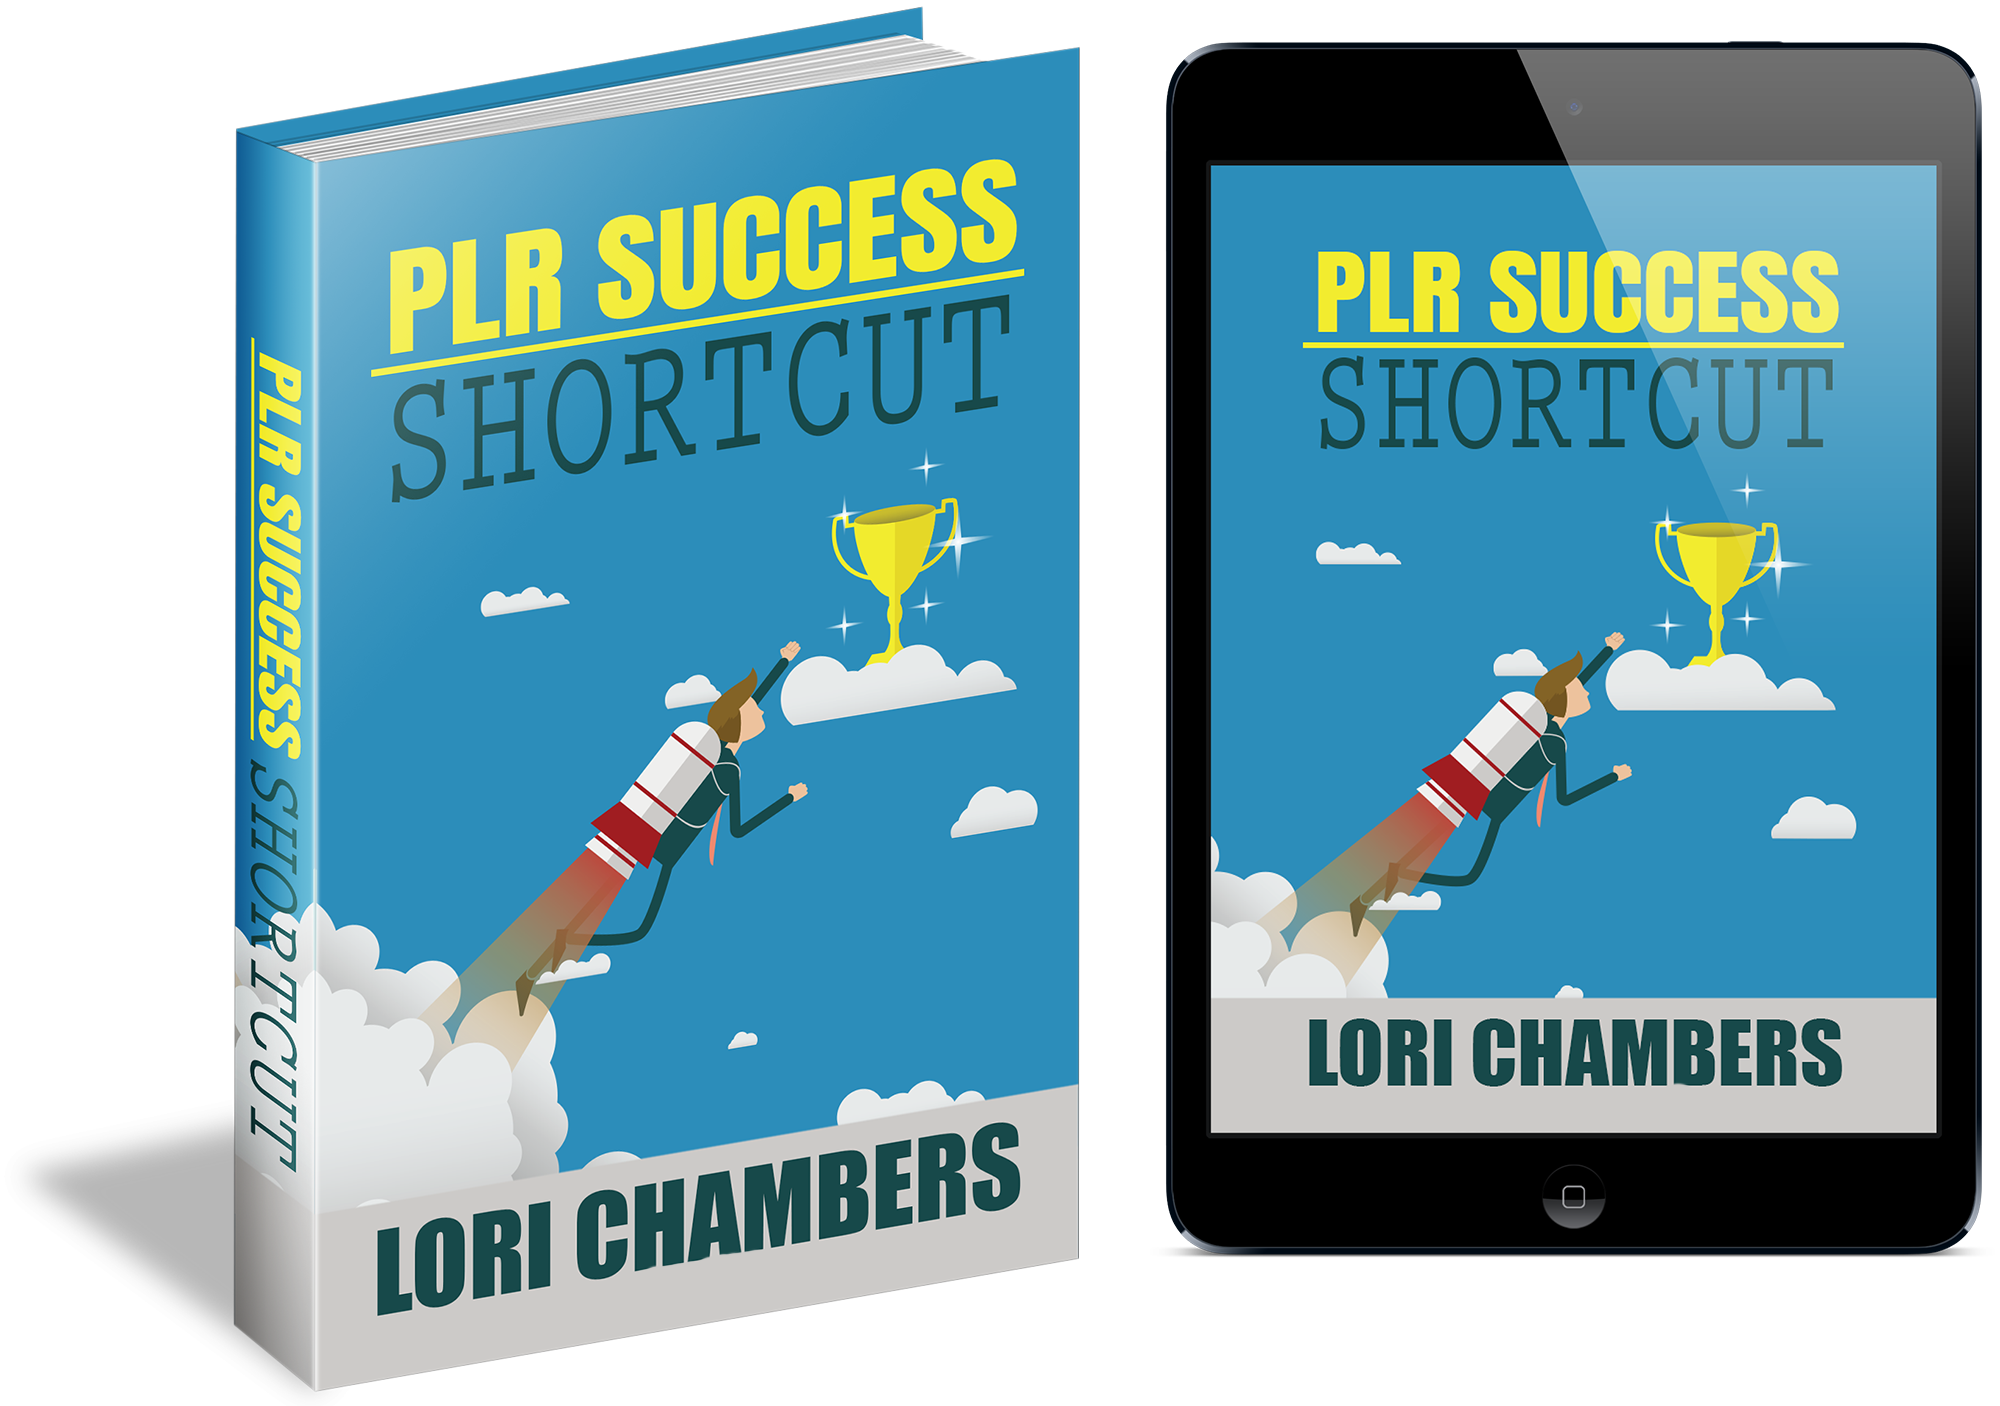 PLR Success Shortcut